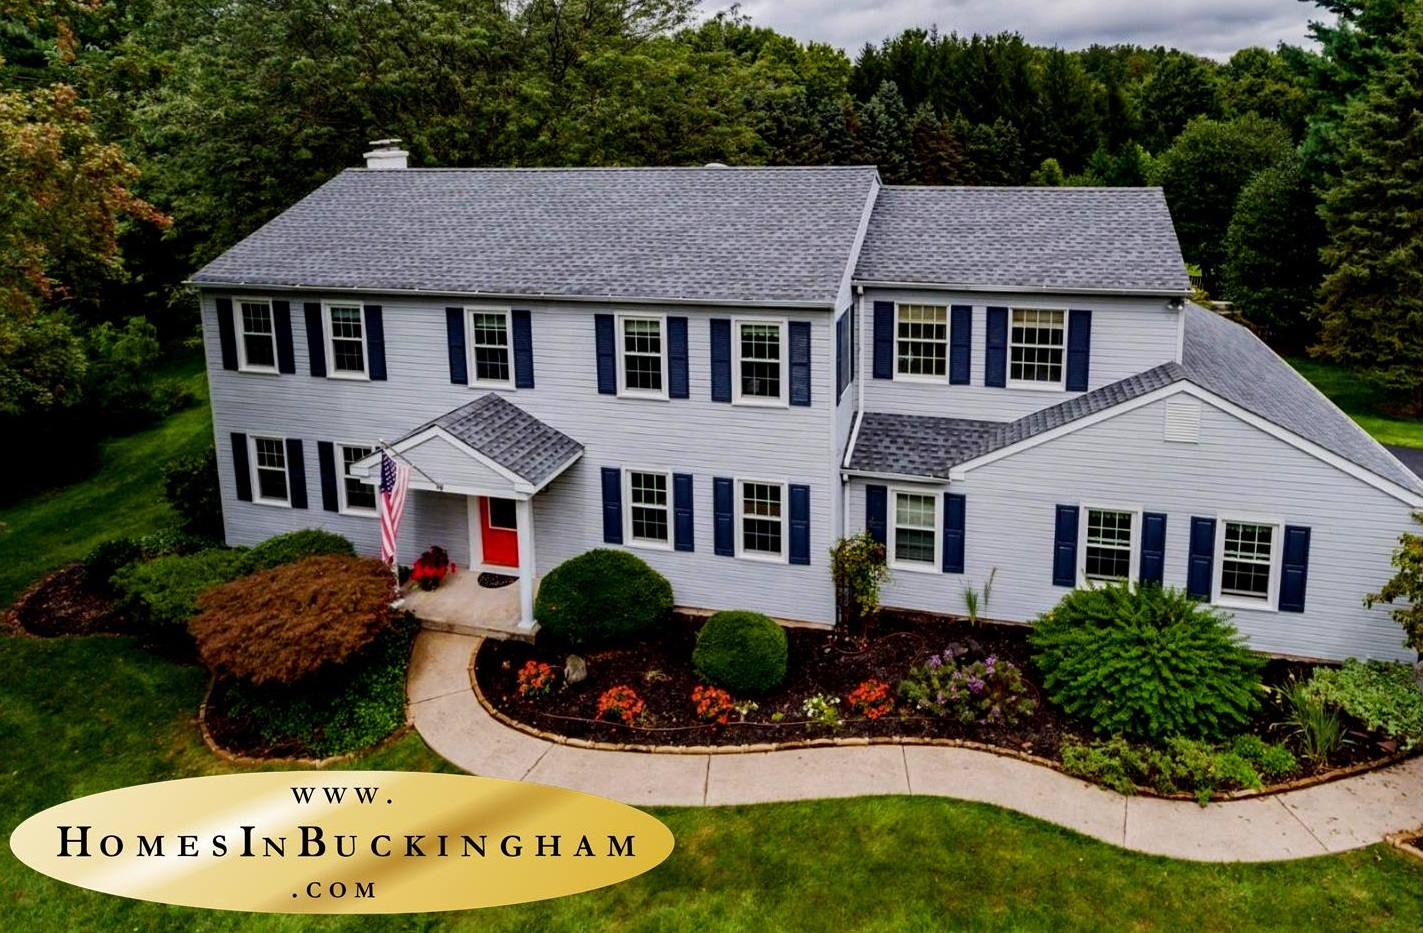 www.HomesInBuckingham.com | #HomesInBuckingham | New Hope Realtors | Doylestown Realtors